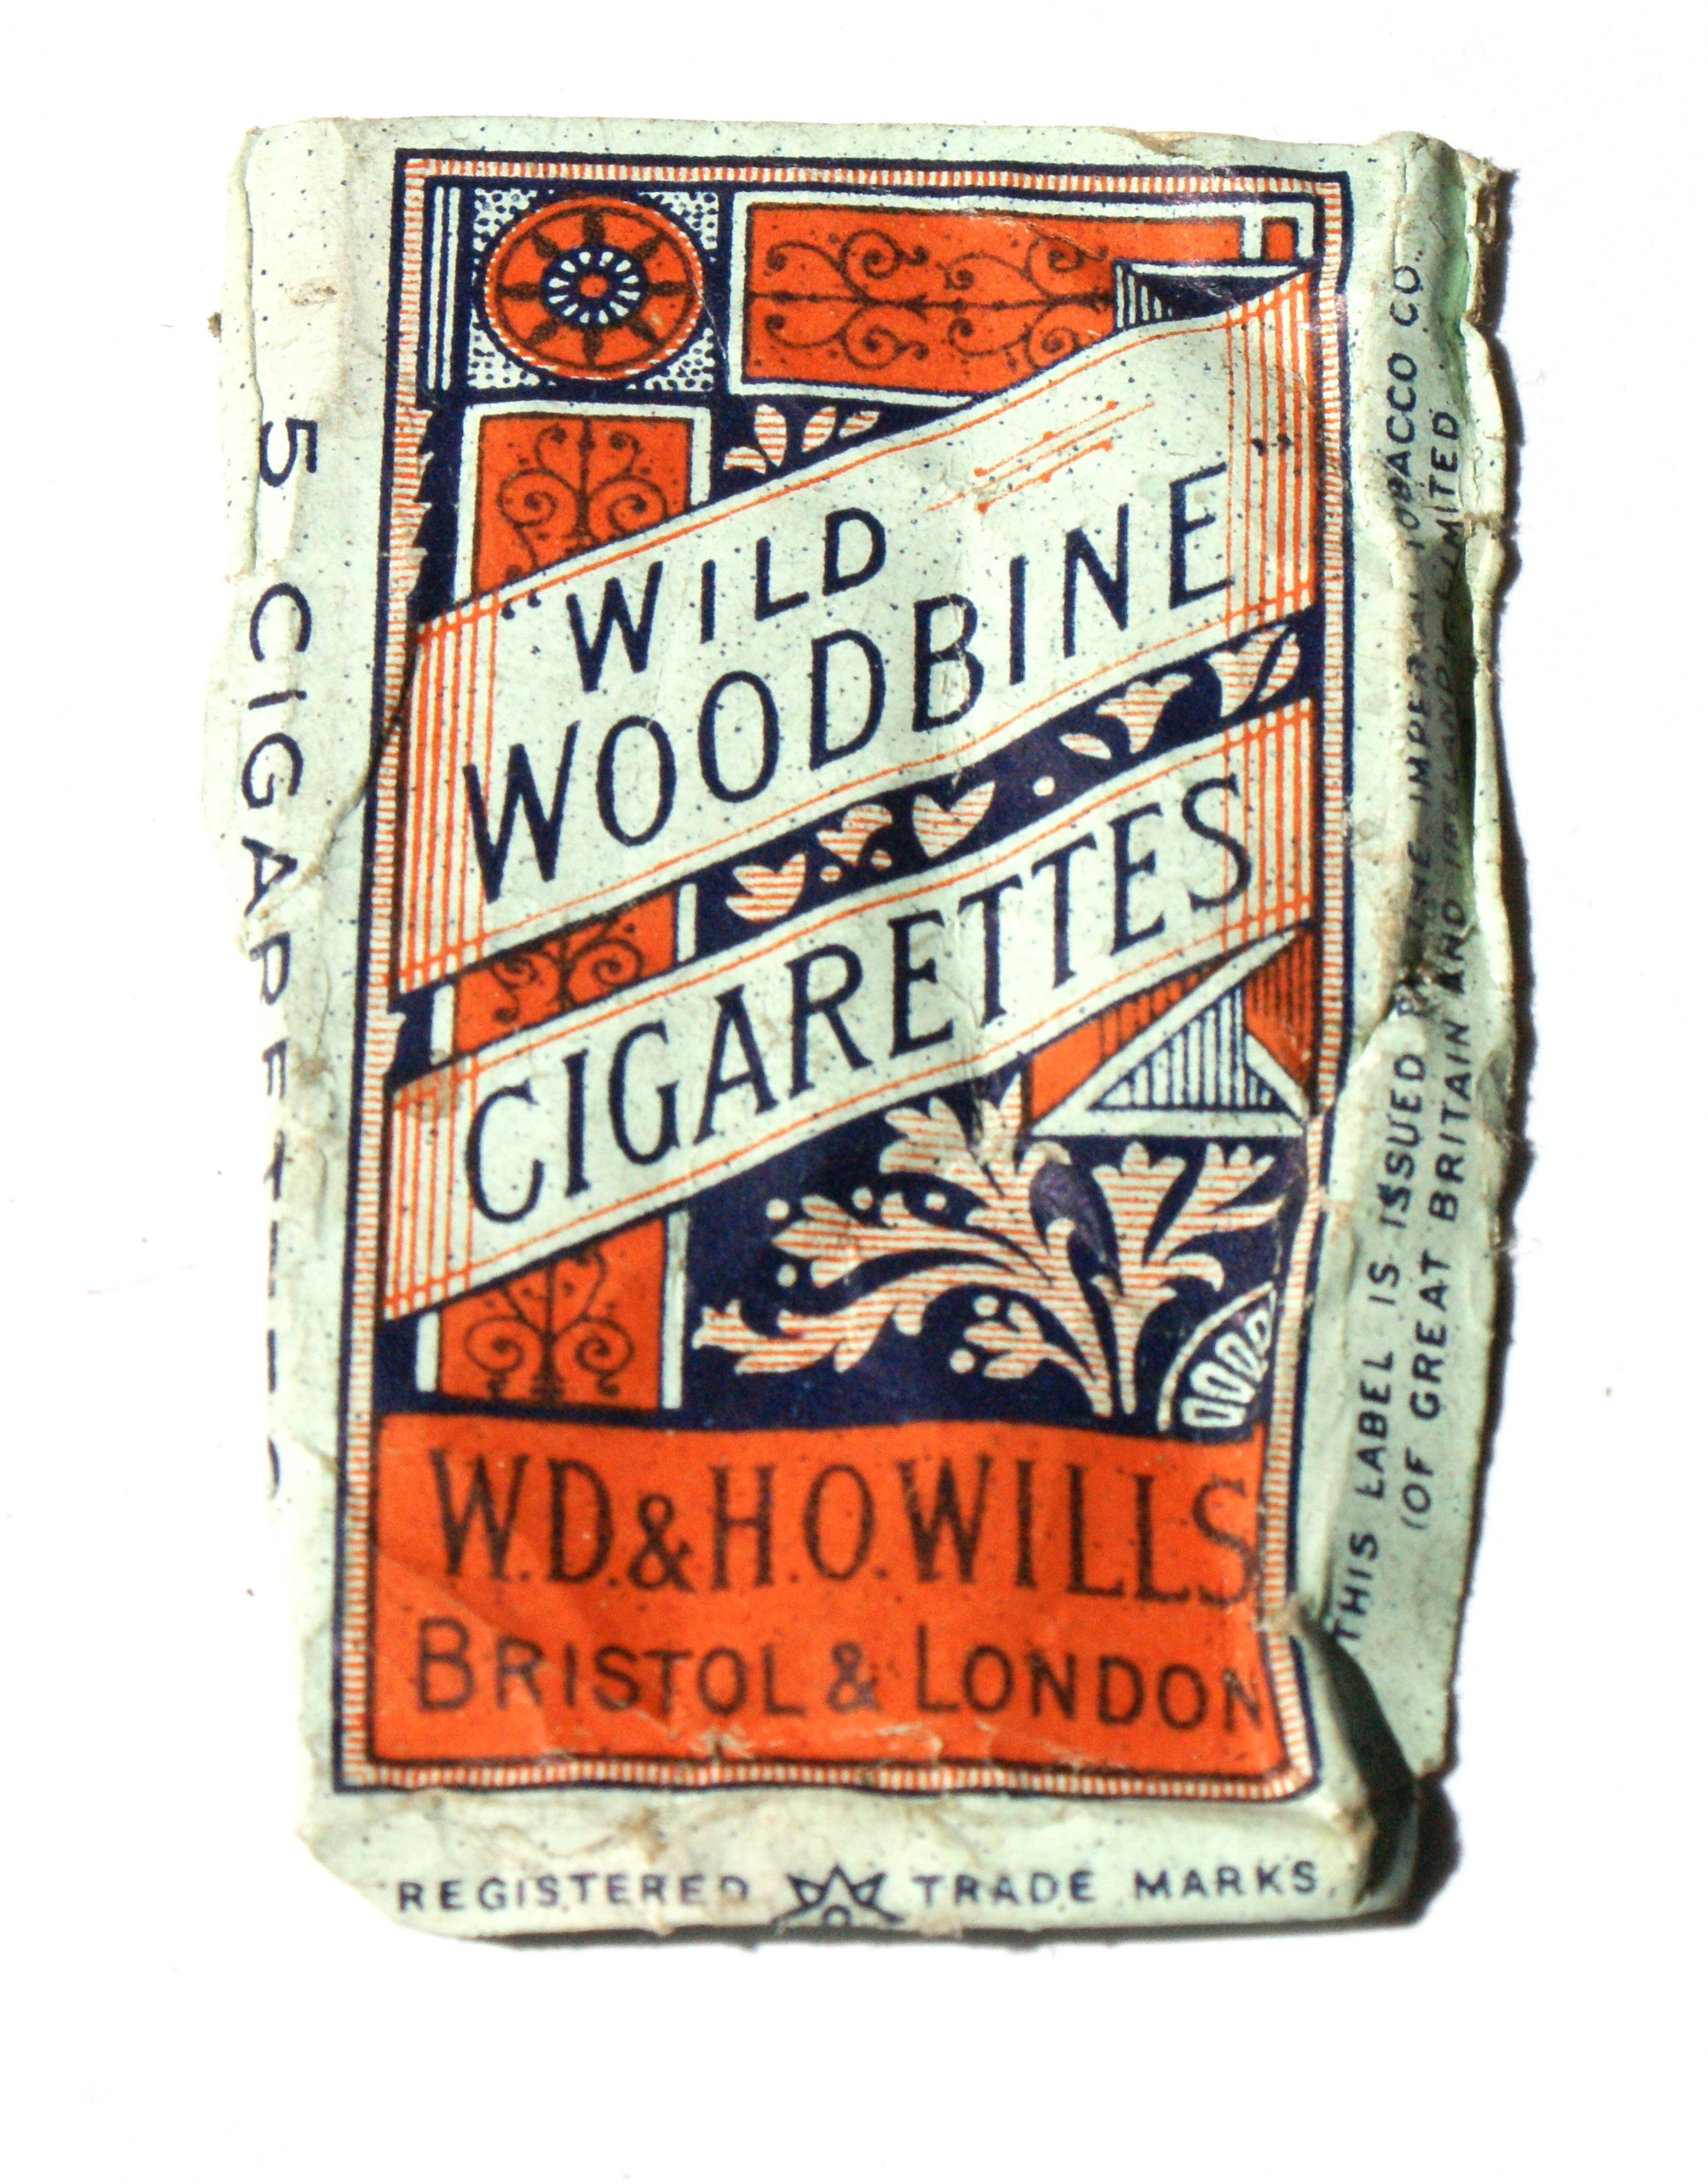 Colour photograph of a packet of cigarettes. It says 'wild woodbine cigarettes' in dark blue text on a design in orange.